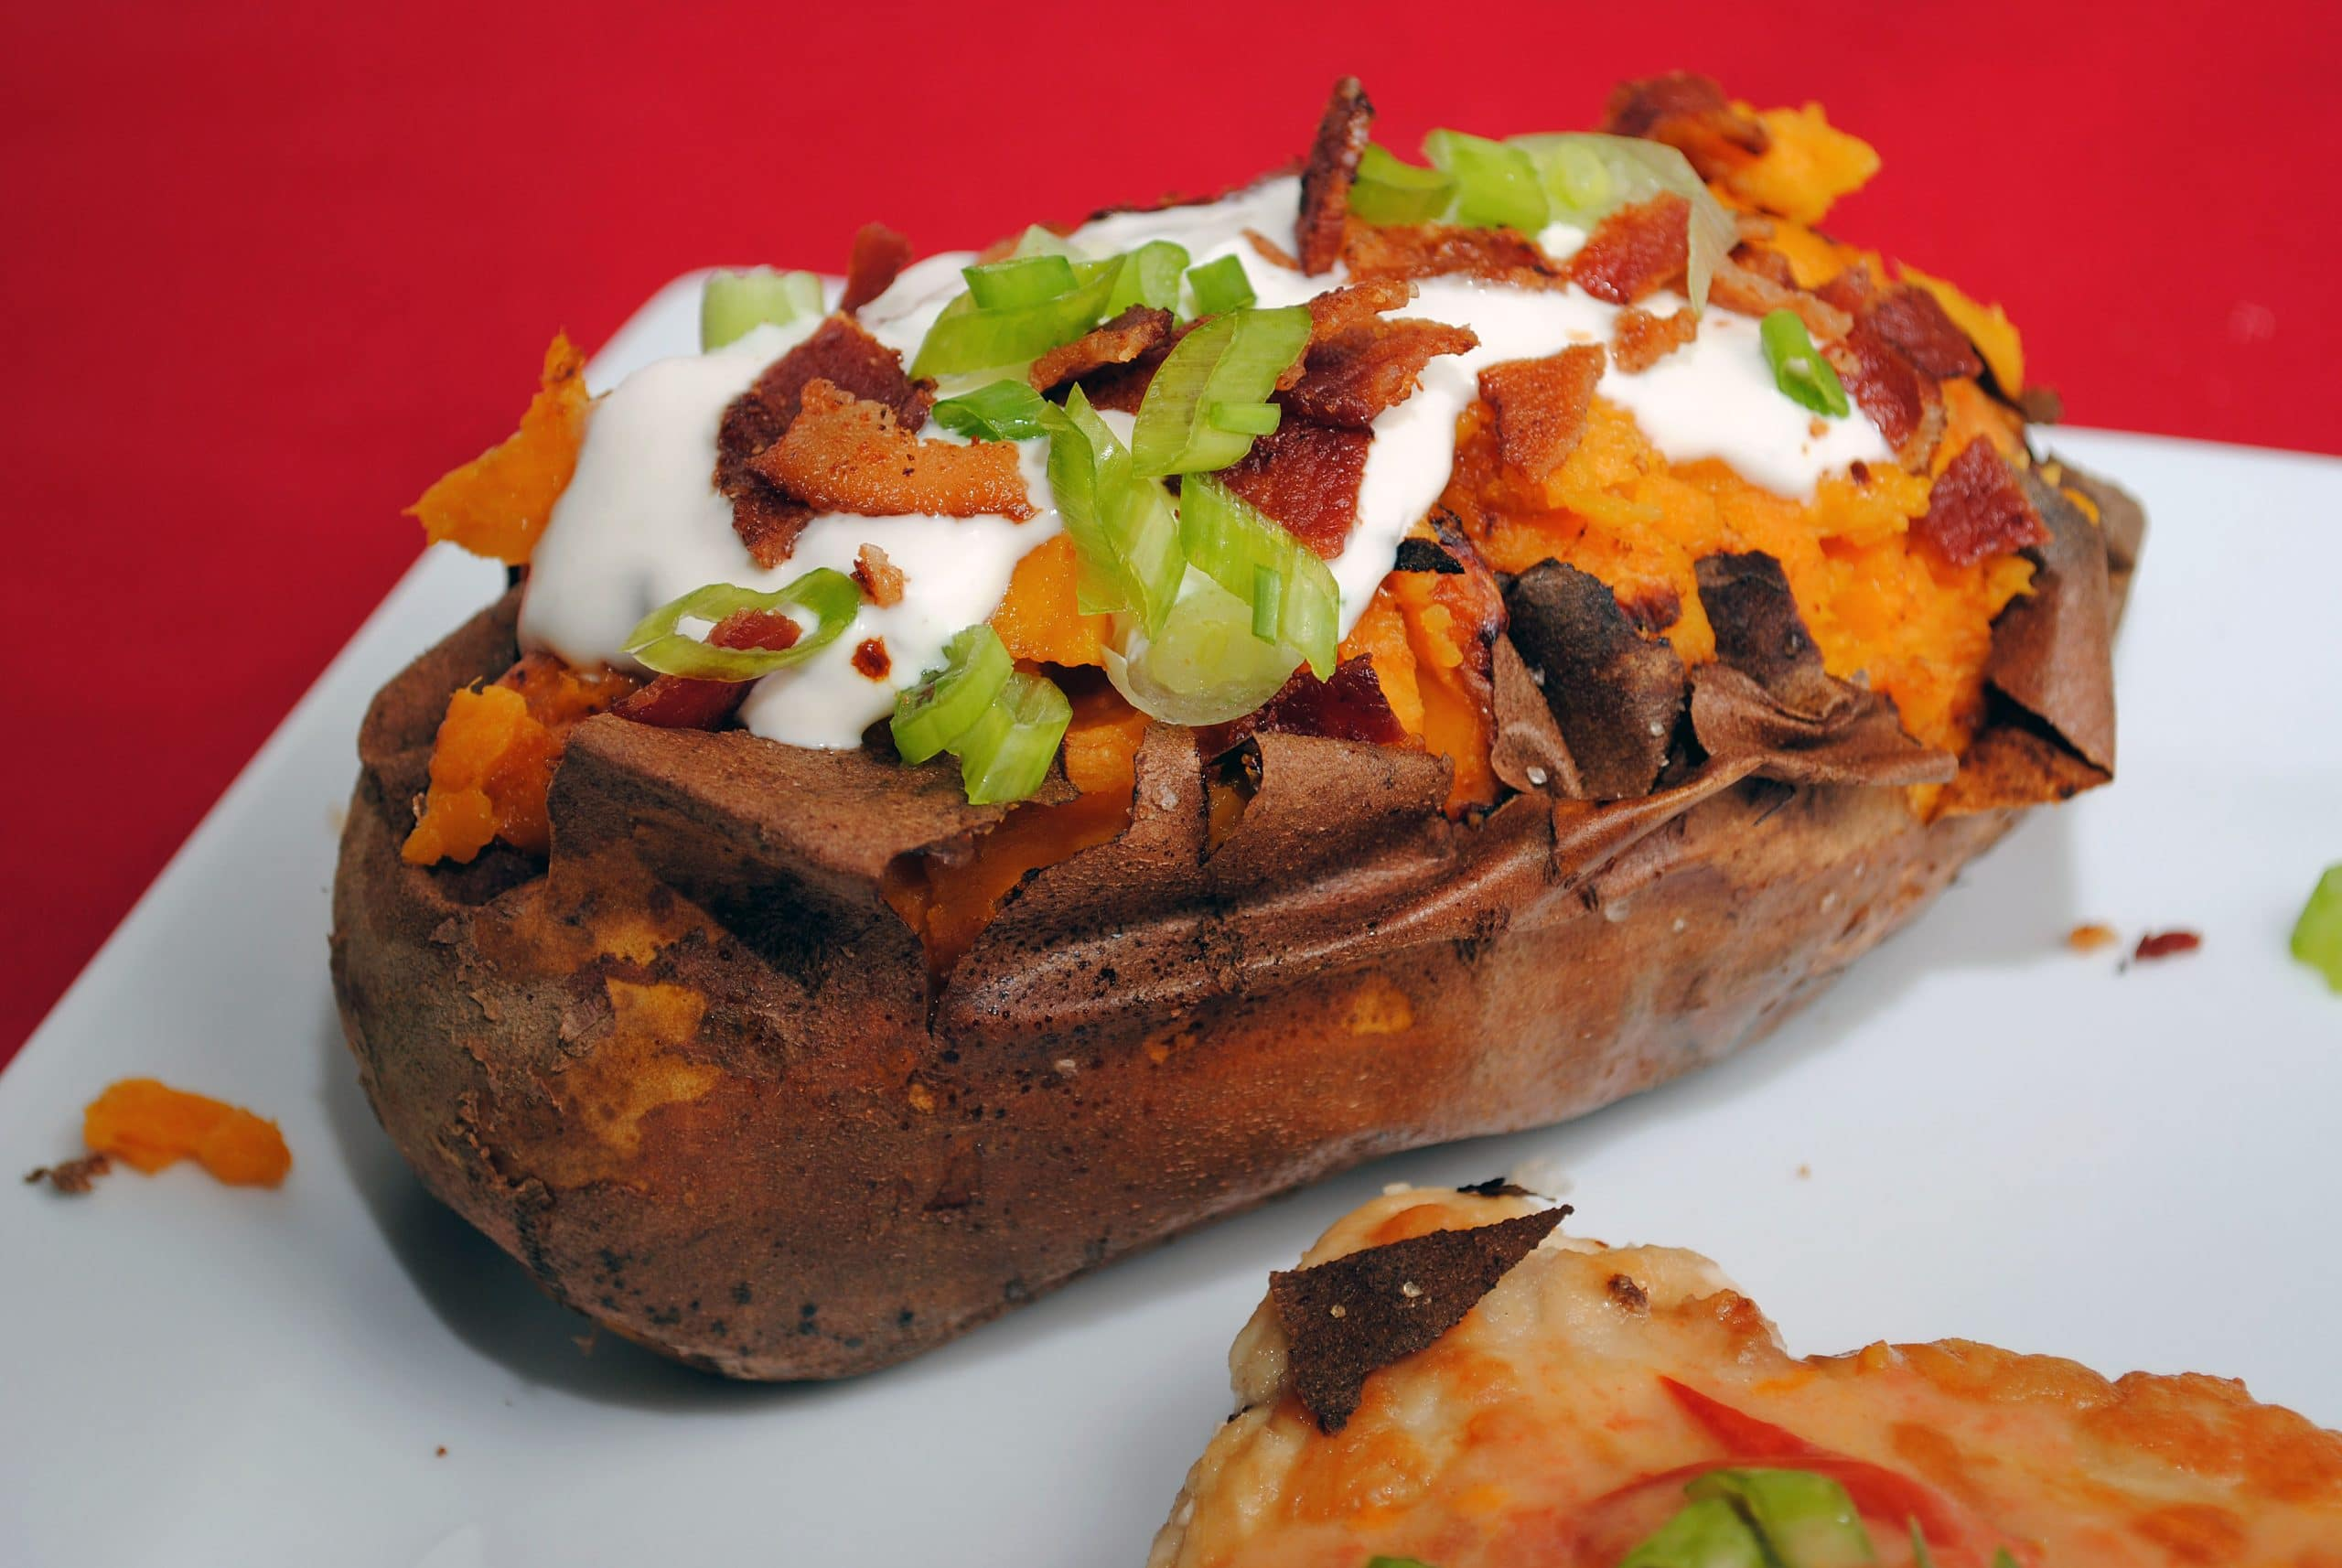 Baked Sweet Potato with Maple Jalapeno Sour Cream